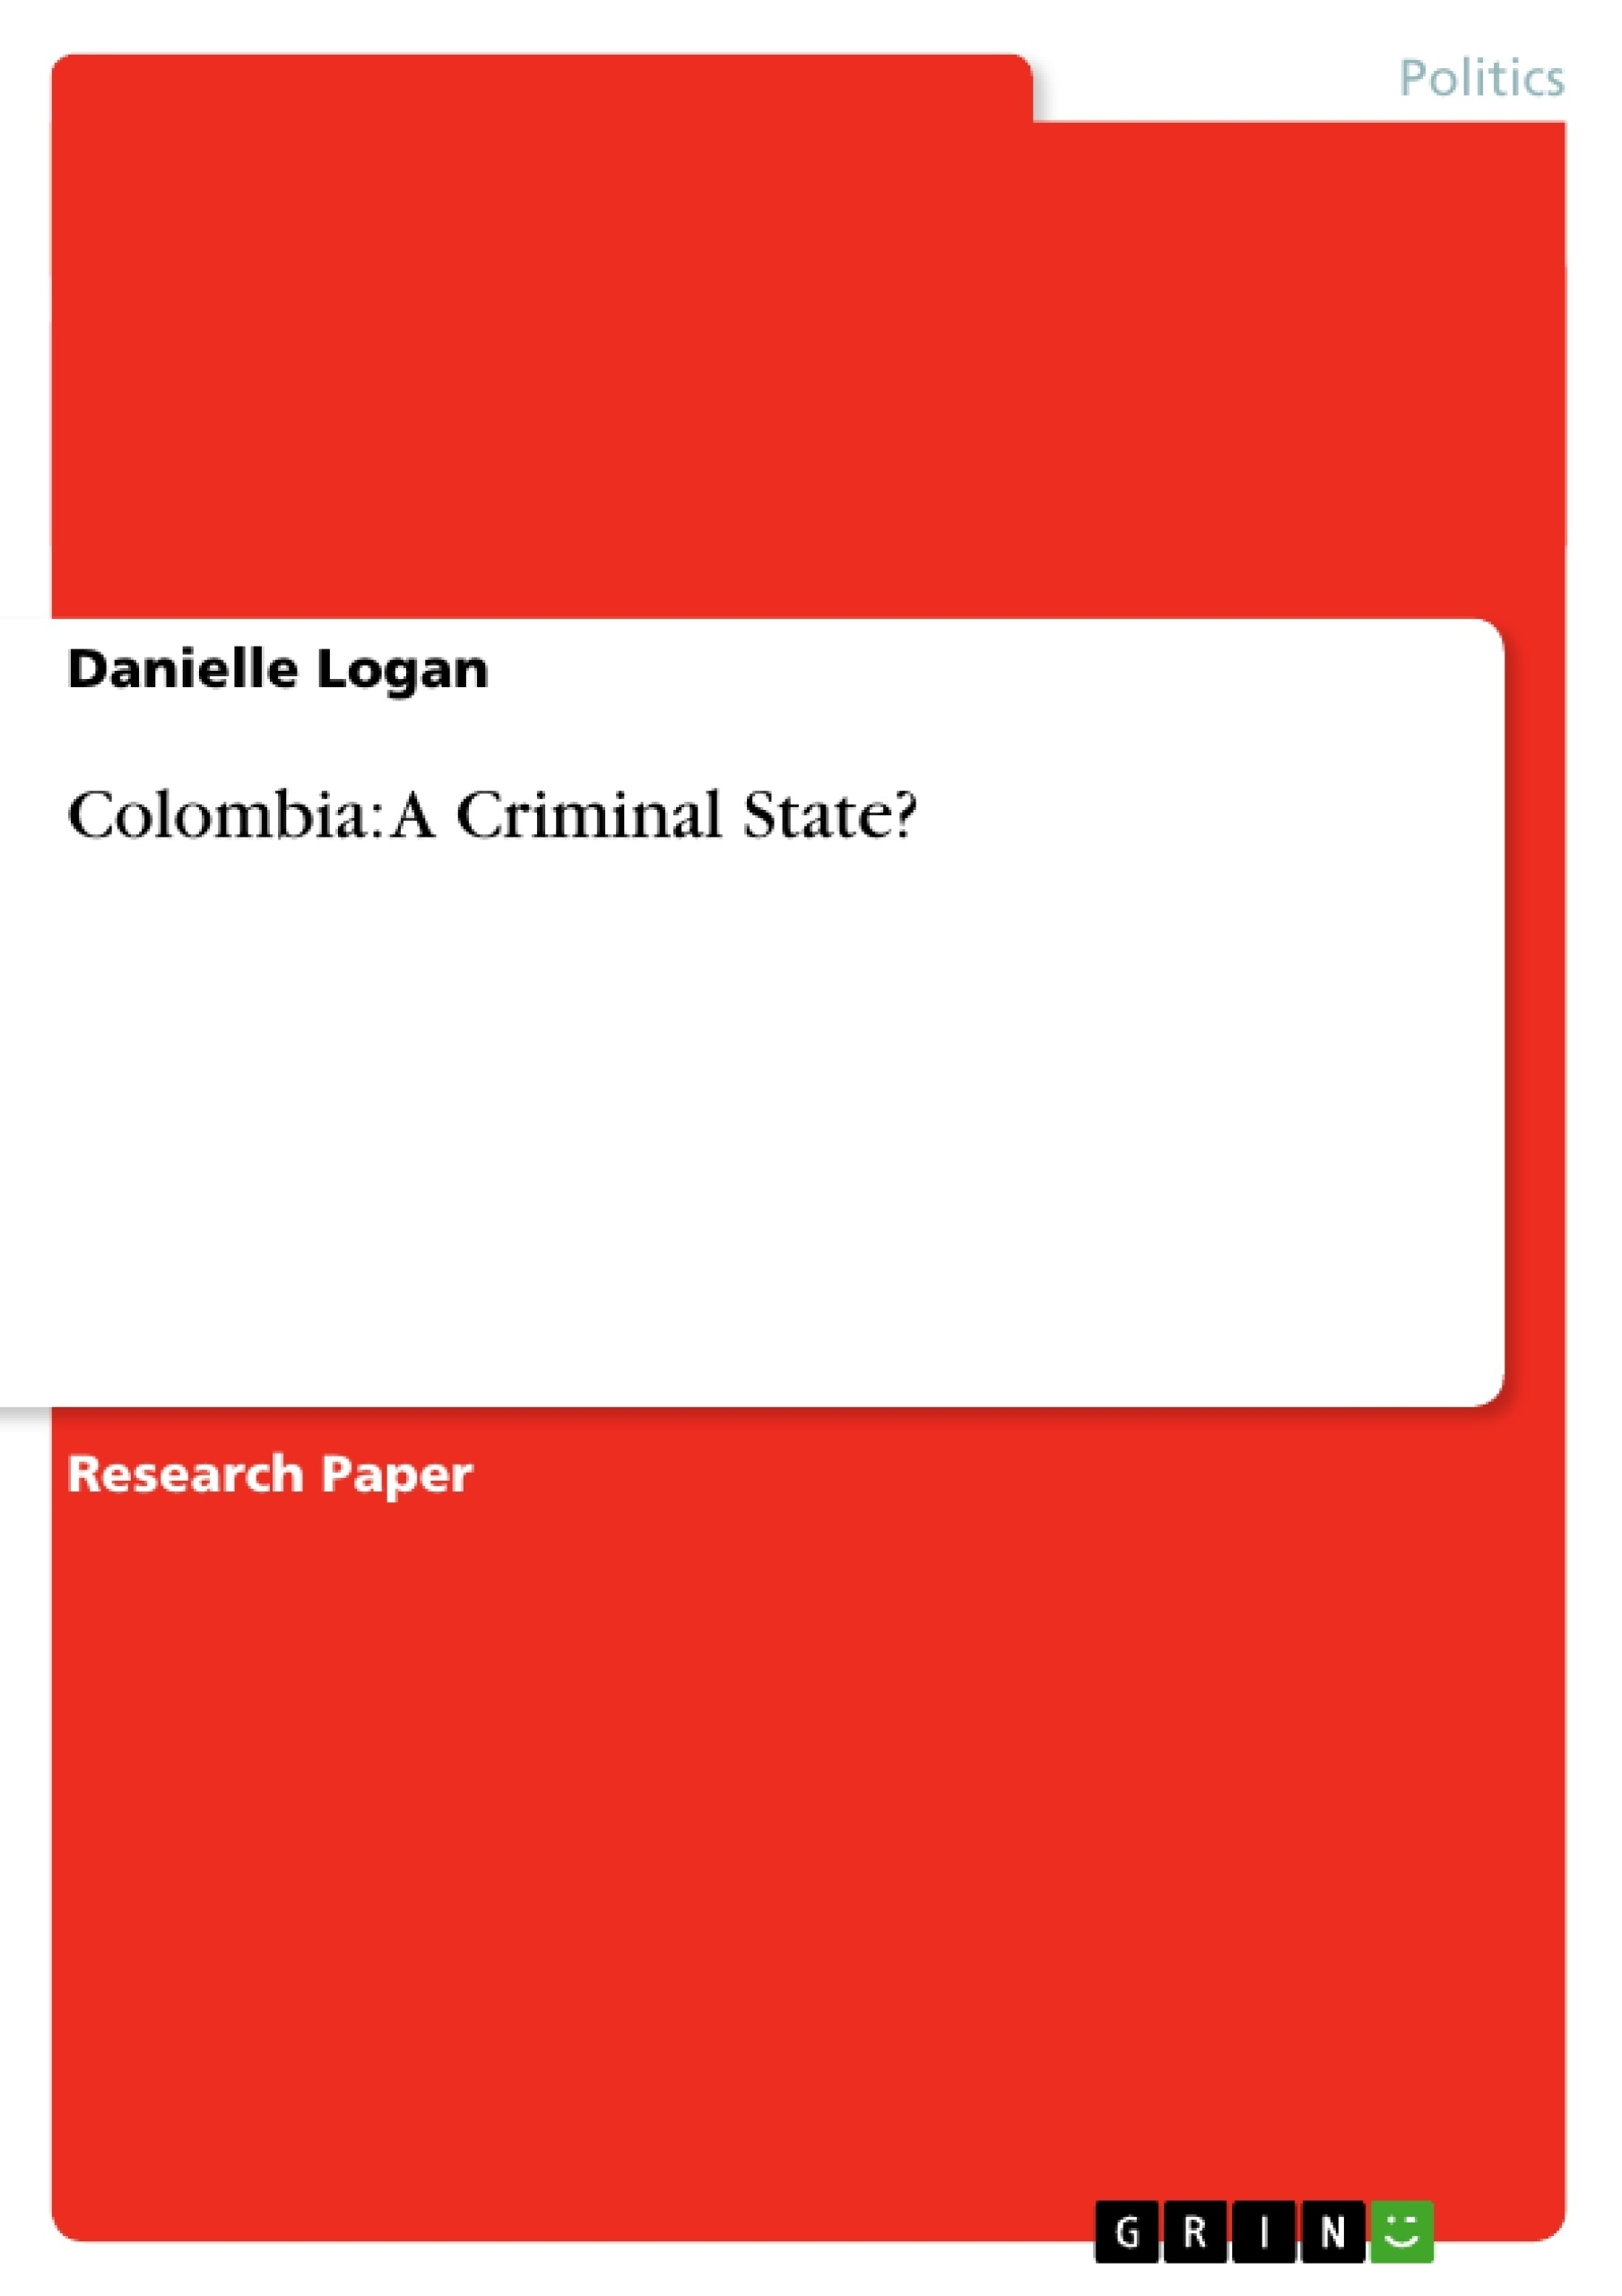 Title: Colombia: A Criminal State?